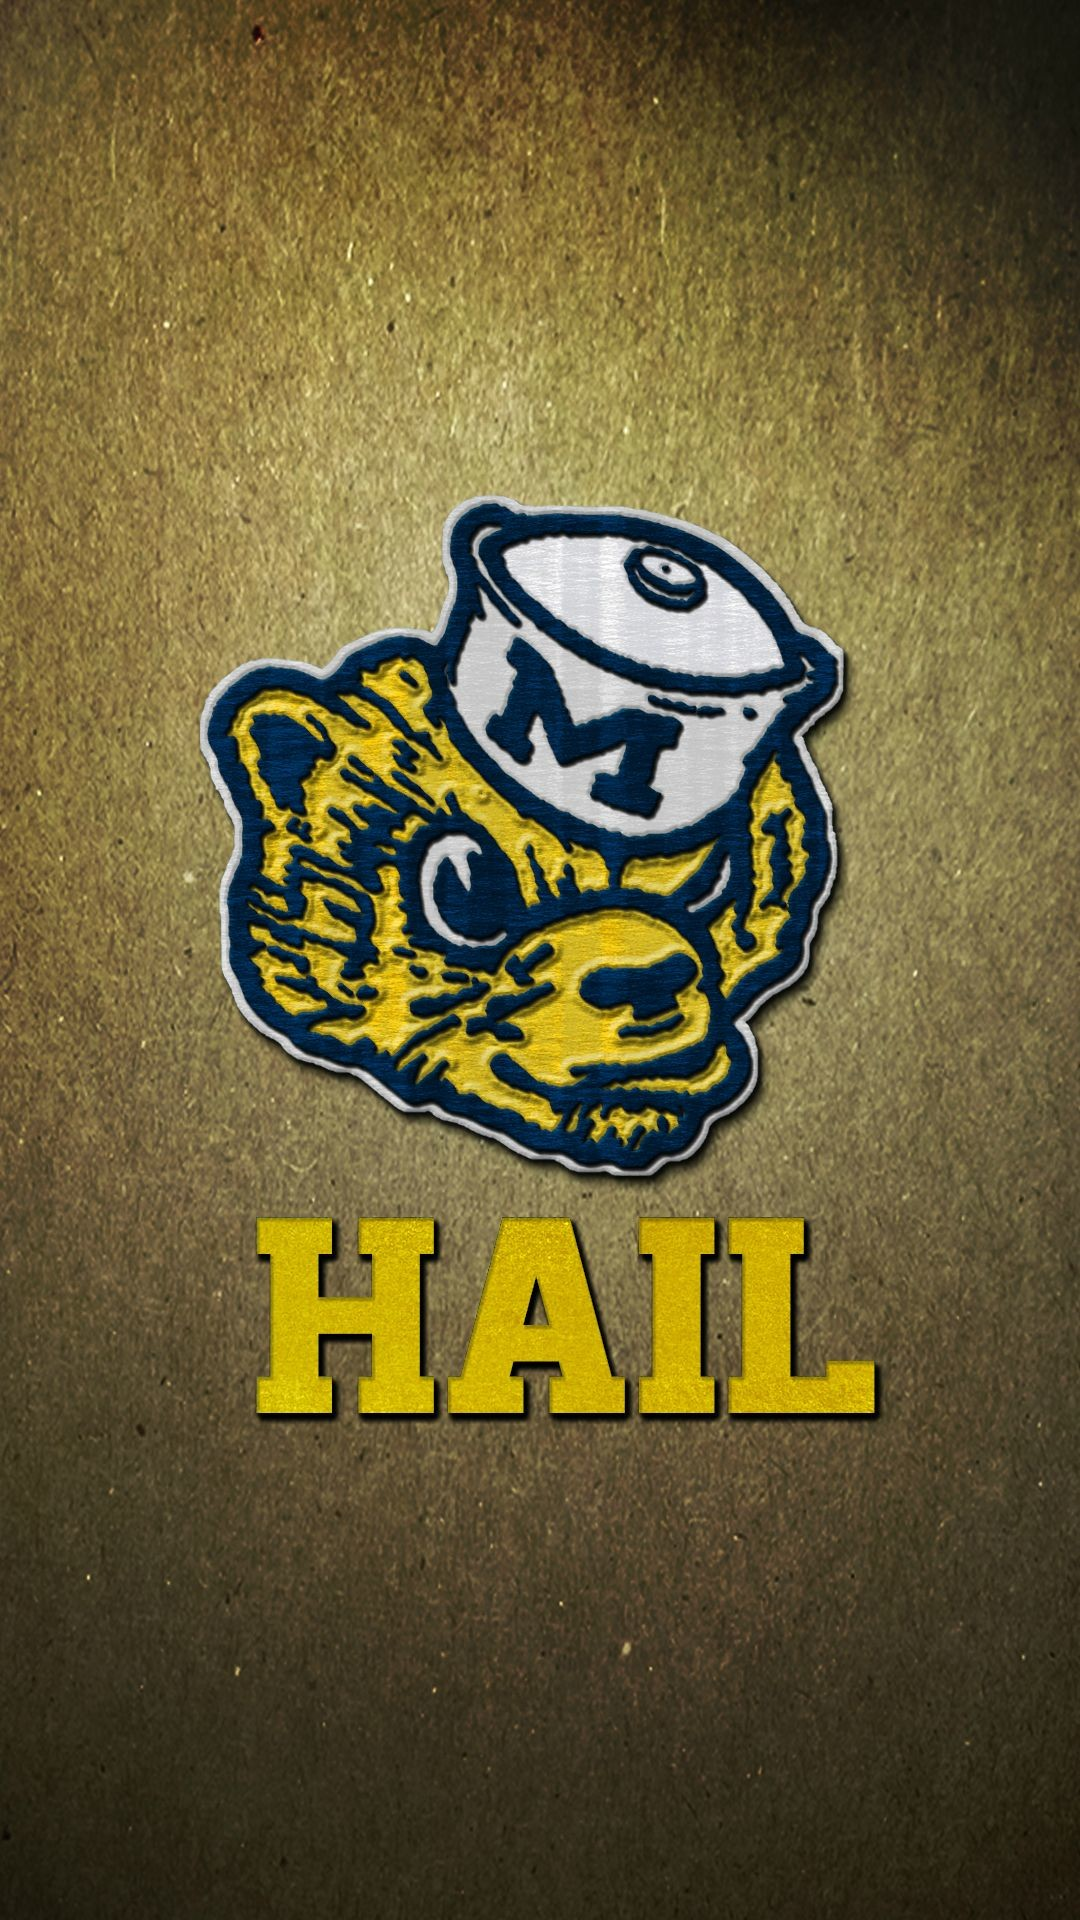 Michigan Wolverines Screensaver and Wallpaper 72 images 1080x1920